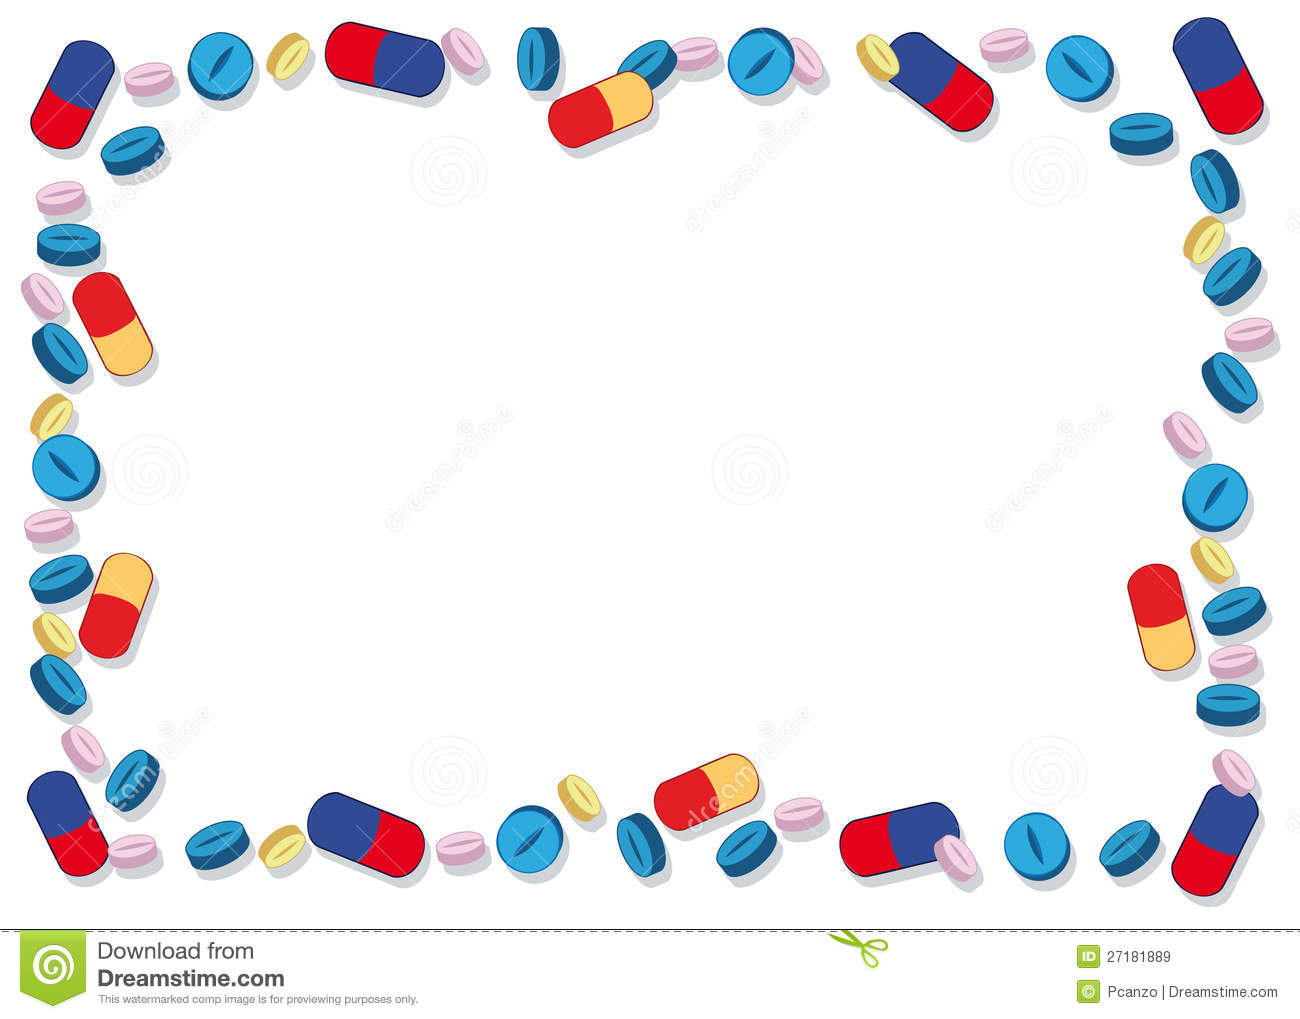 Royalty Free Stock Images Coloured Pills Frame Image27181889 on Time Capsules